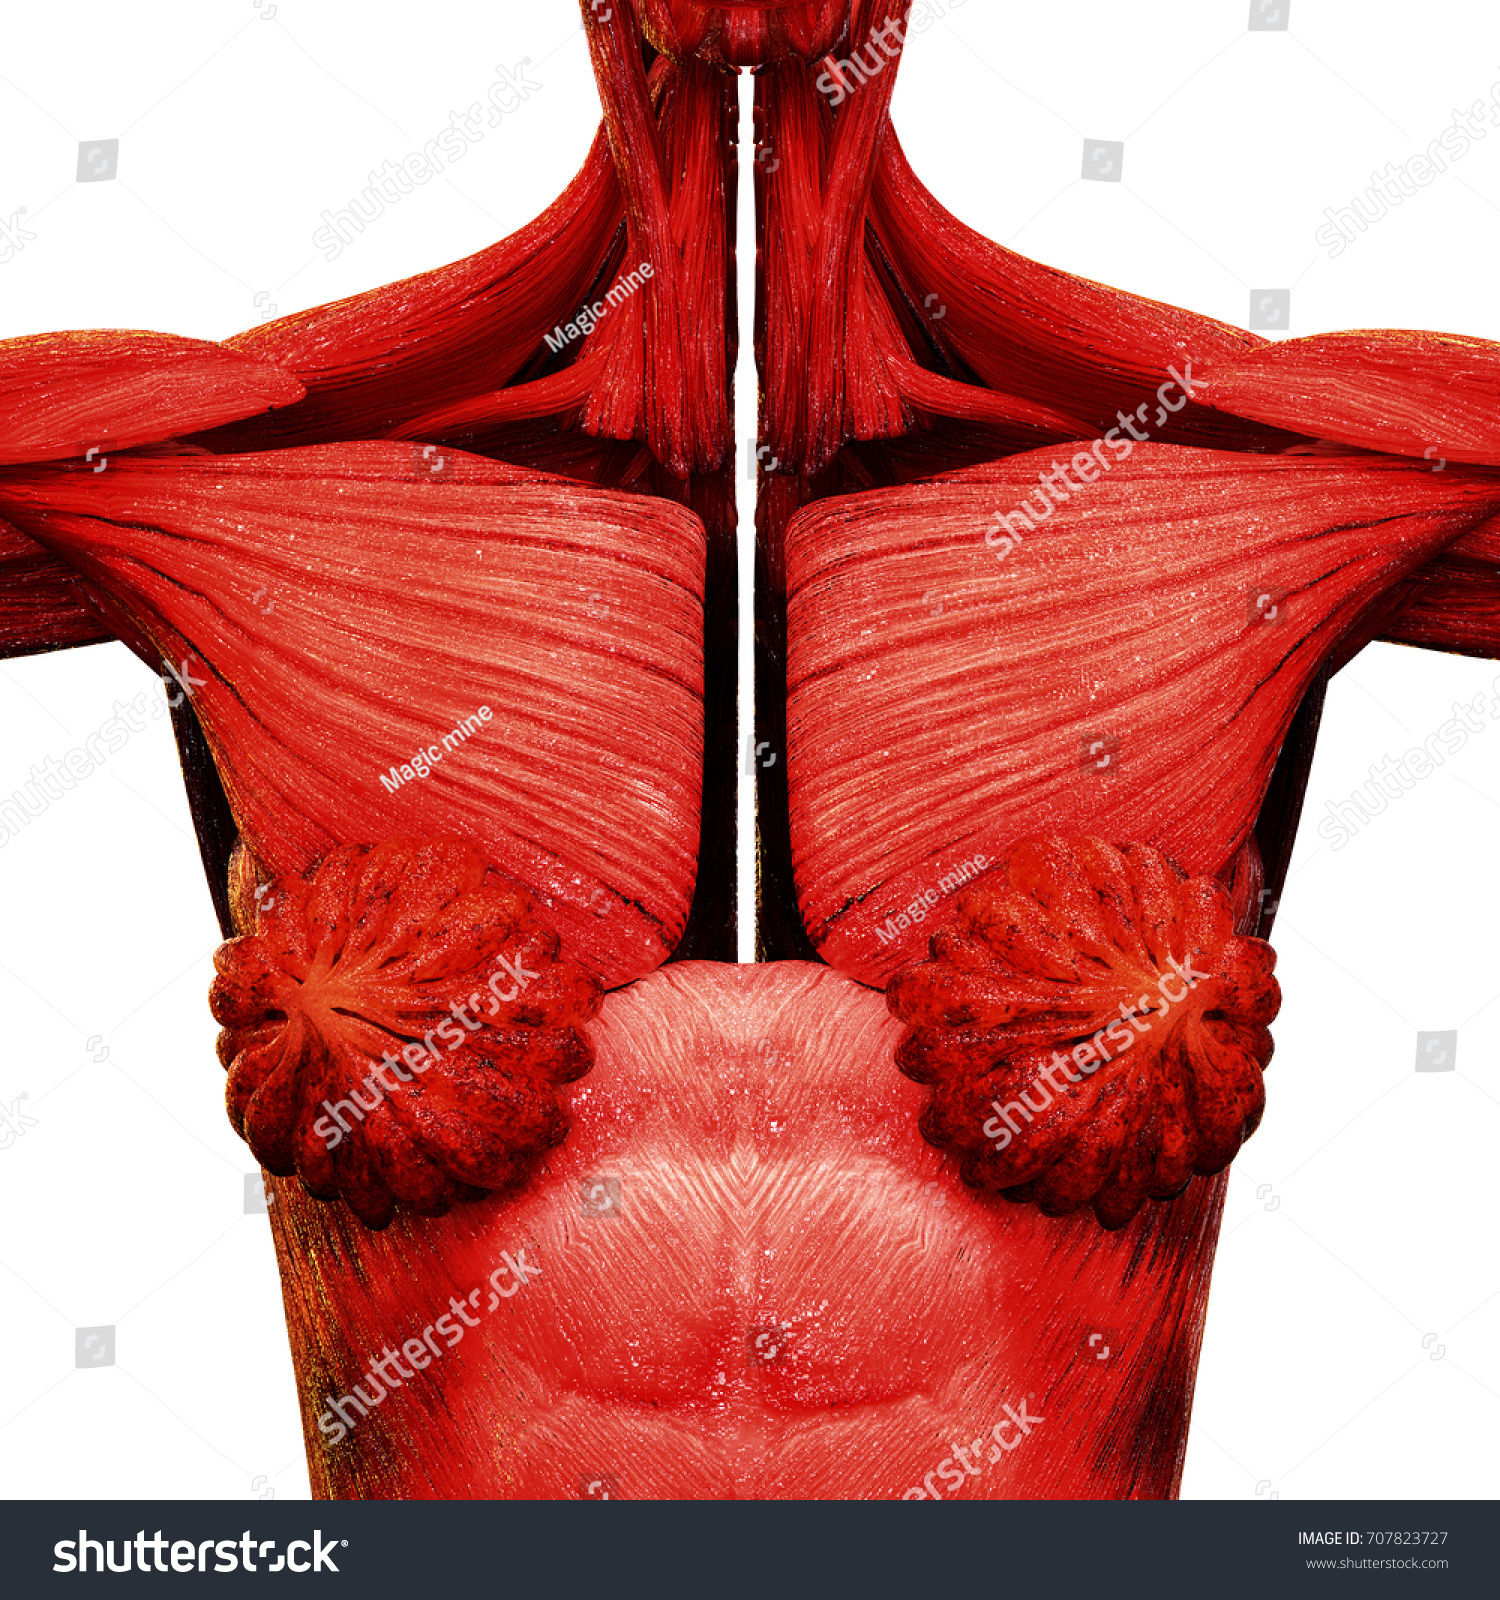 Human Female Body Organs Mammary Glands Stock Illustration 707823727